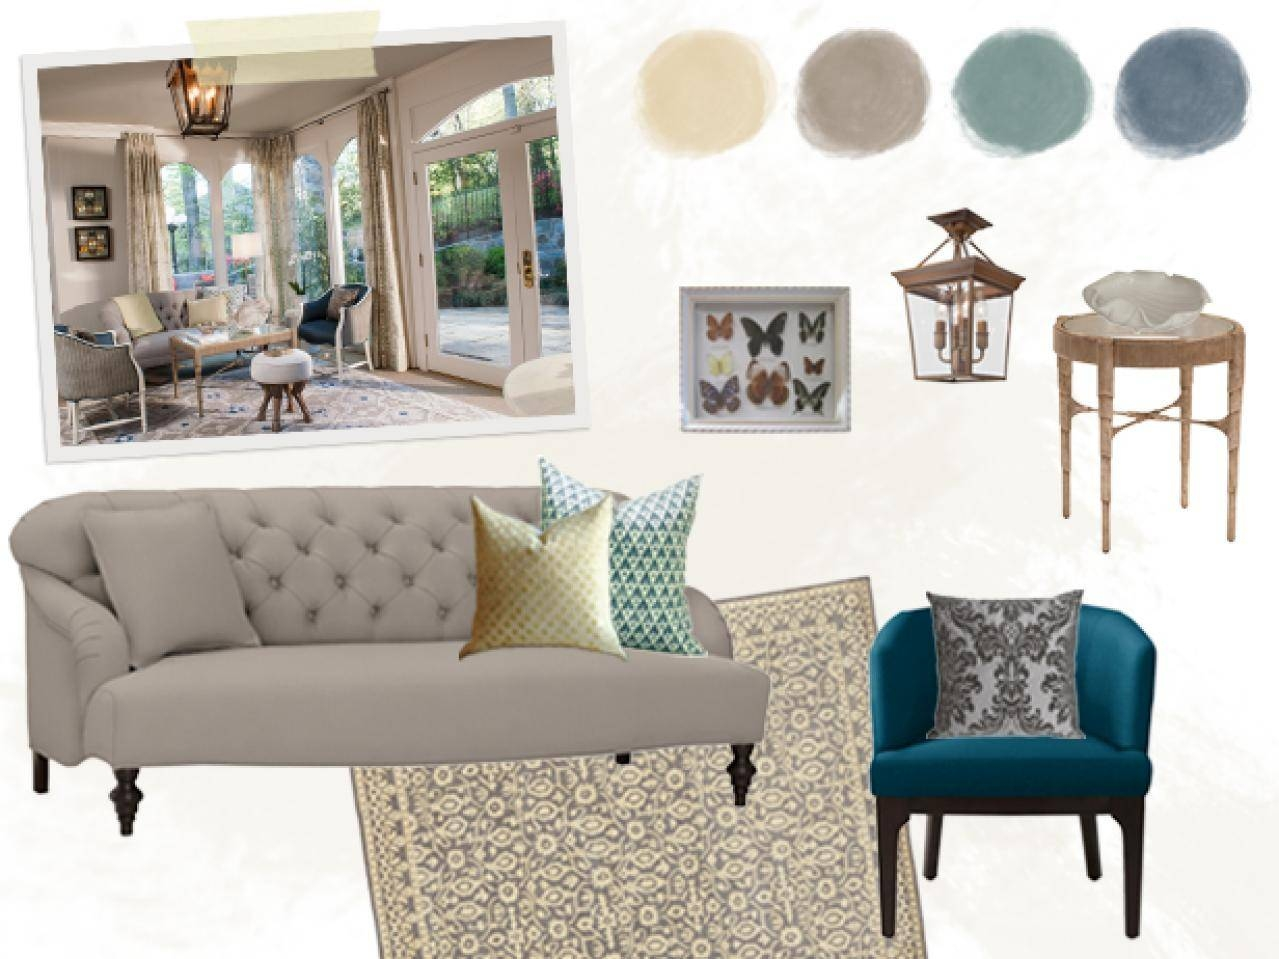 Floor Planning A Small Living Room | Hgtv inside Small Lounge Sofas (Image 6 of 15)